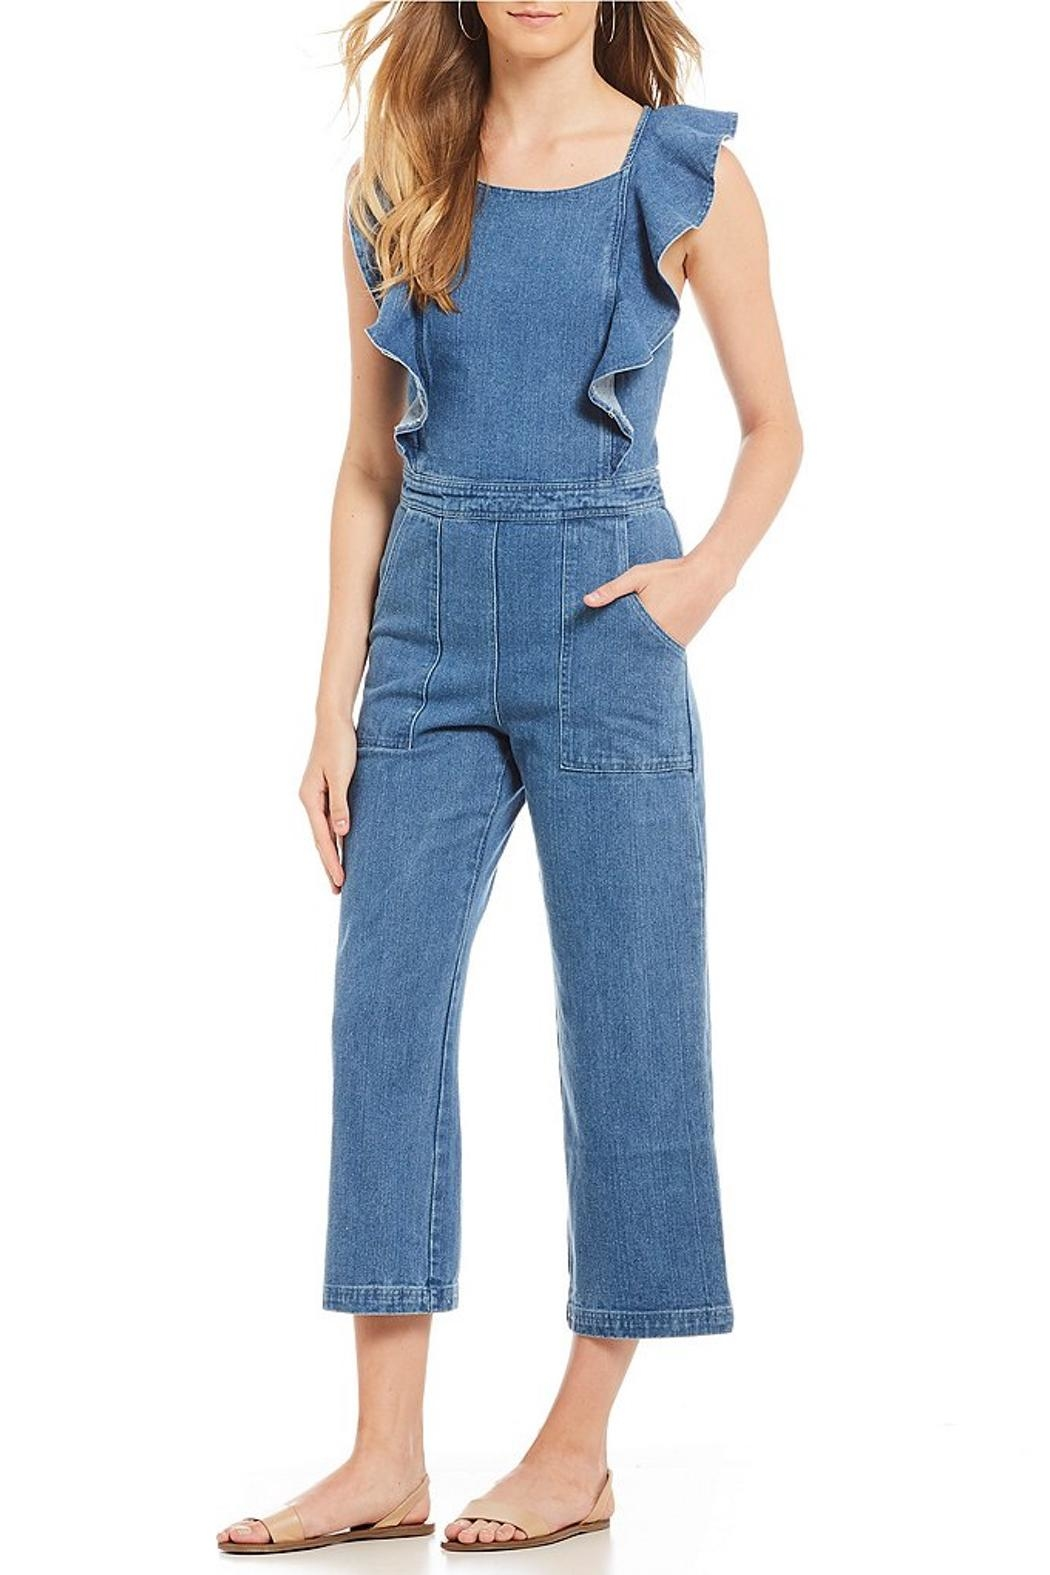 Sugar Lips Denim Jumpsuit - Back Cropped Image